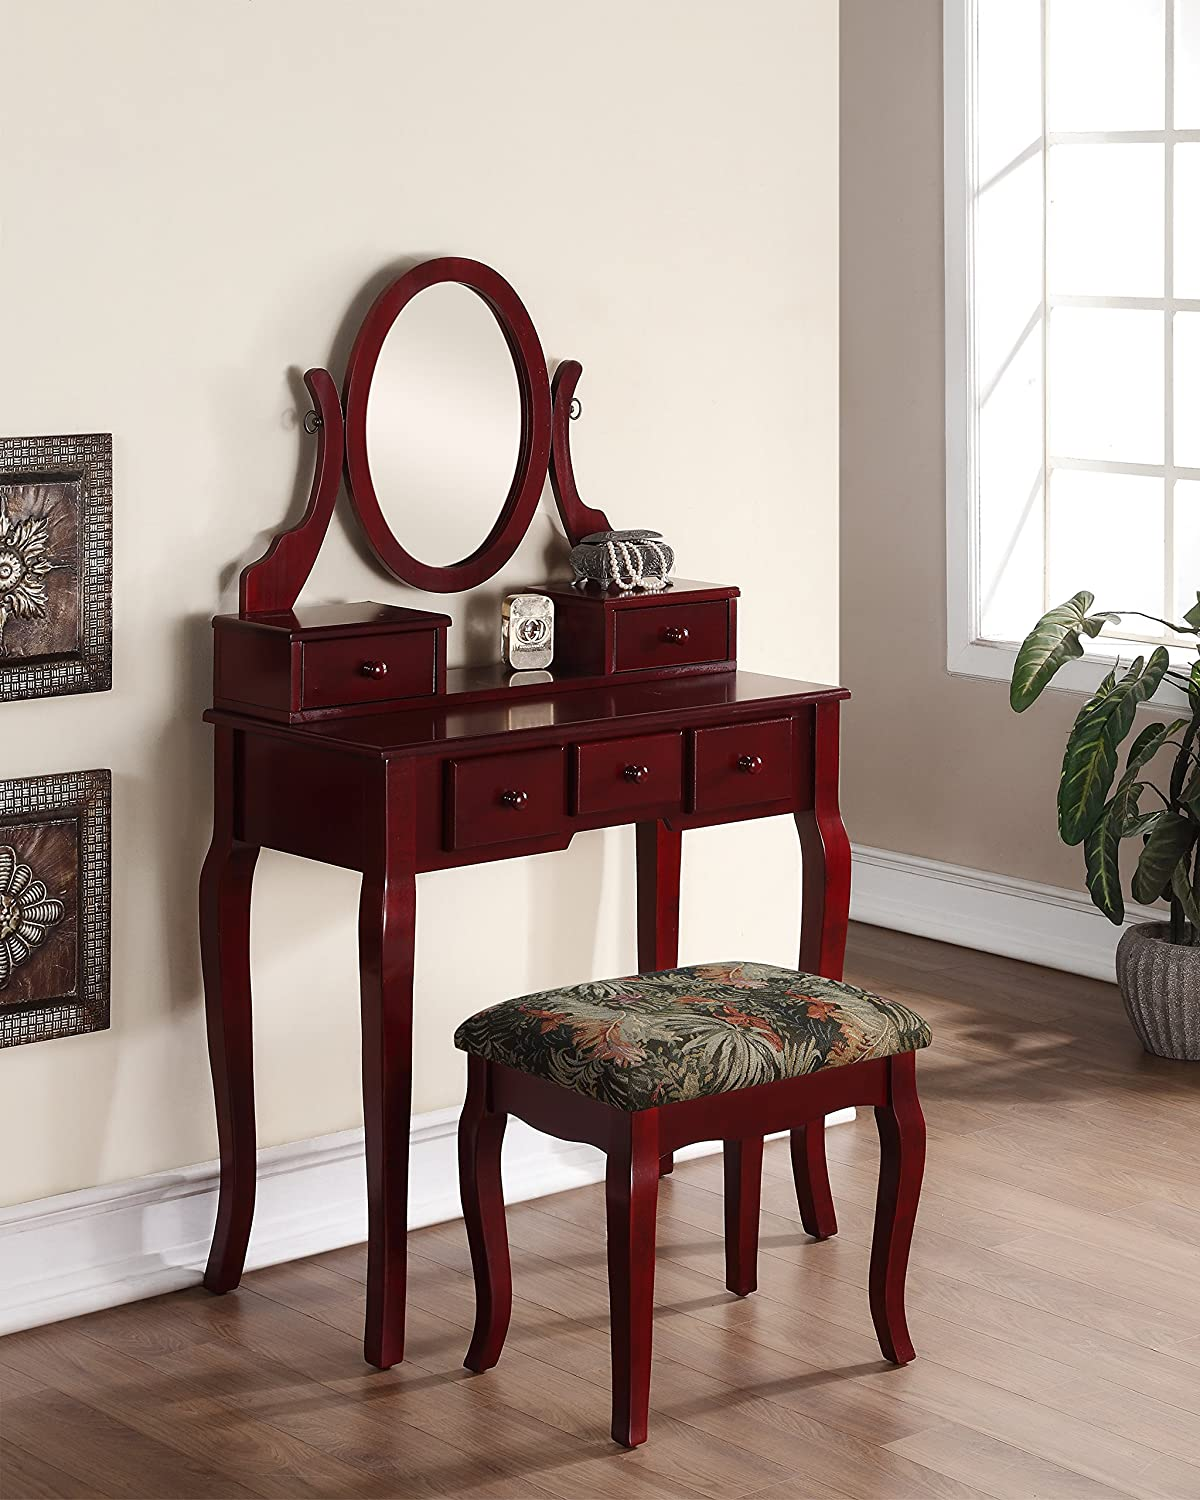 Roundhill Furniture Ashley Wood Make-Up Vanity Table and Stool Set, Cherry